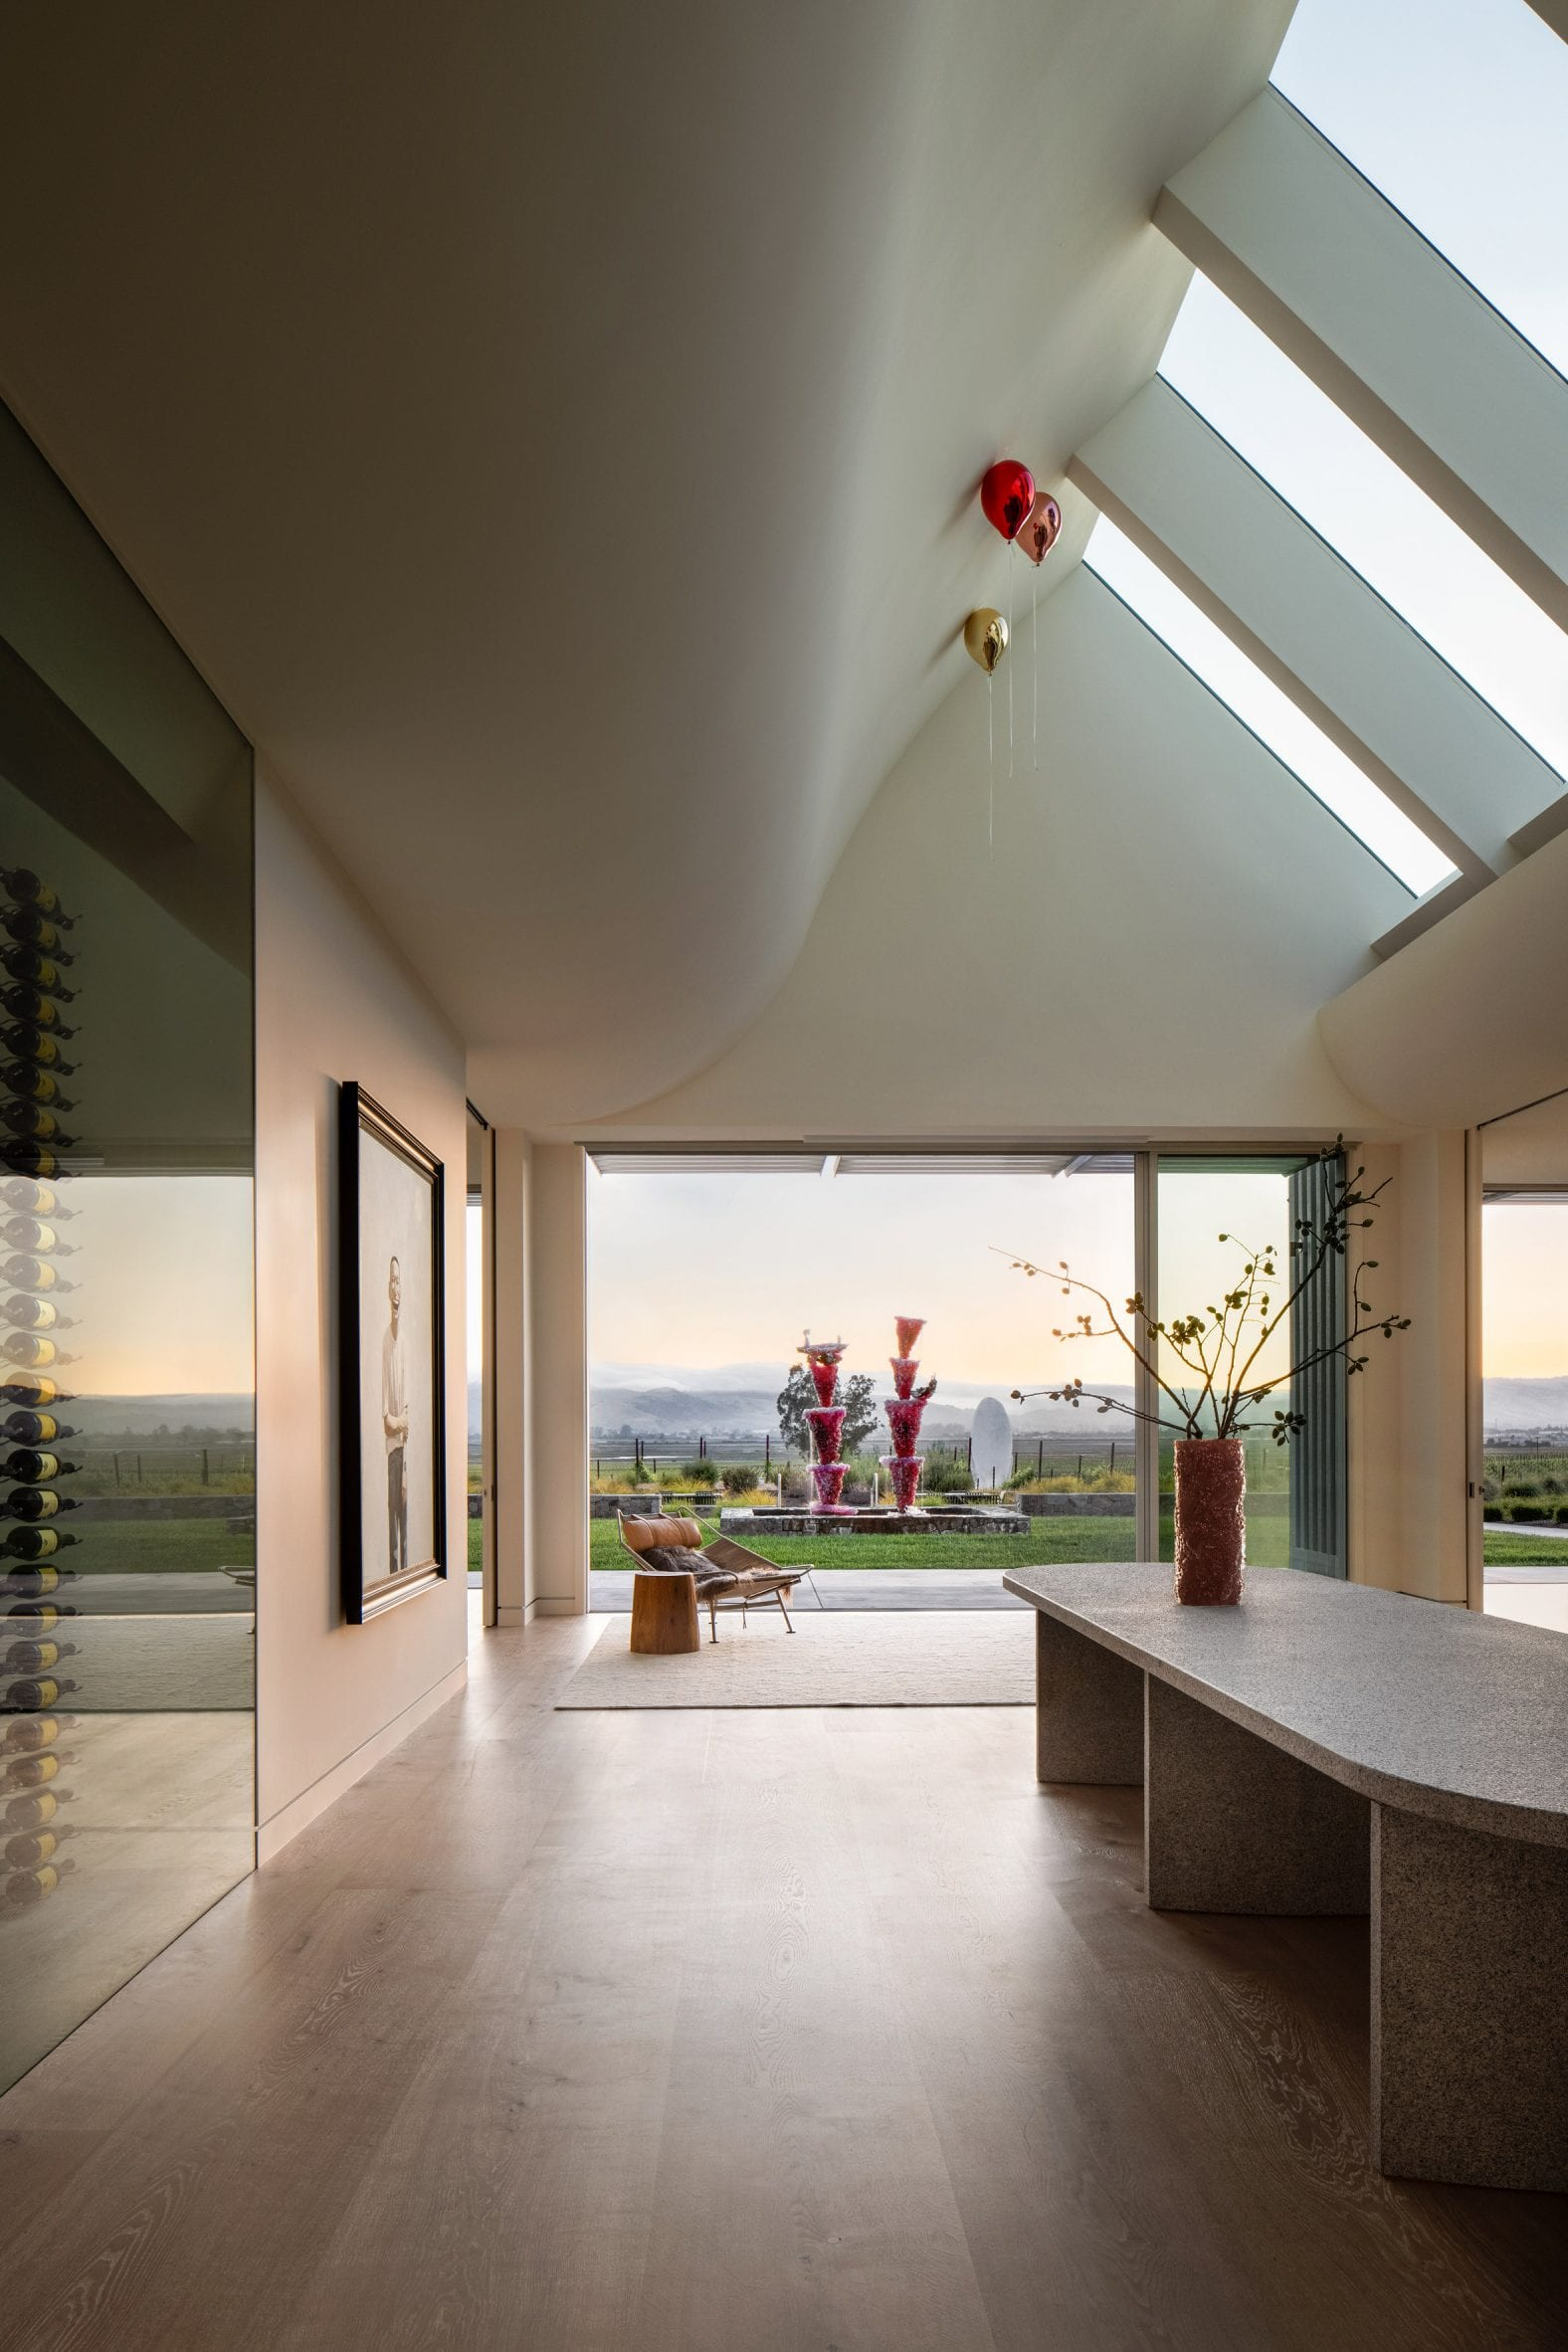 Skylights feature in the Donum Home's great room